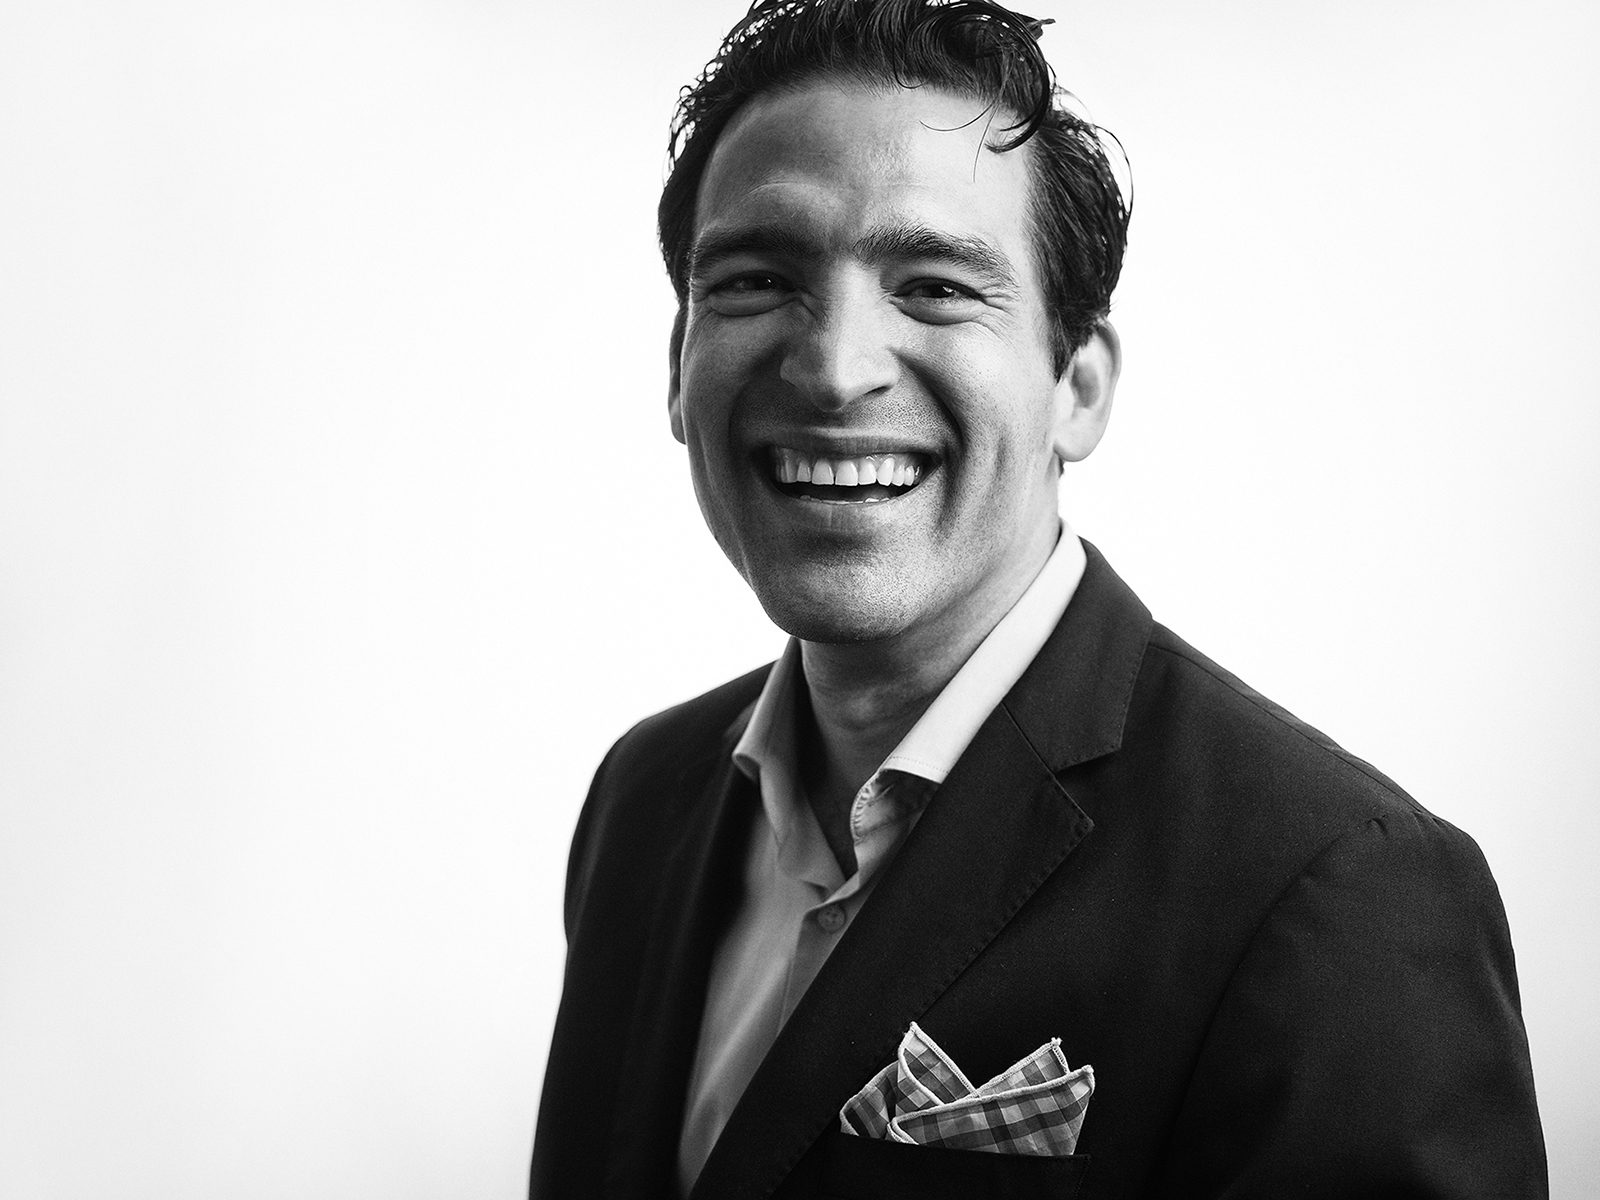 Omar Gonzalez photographed at Eleven Hundred Collective Studio in downtown San Antonio, Texas, by editorial and commercial photographer Josh Huskin.